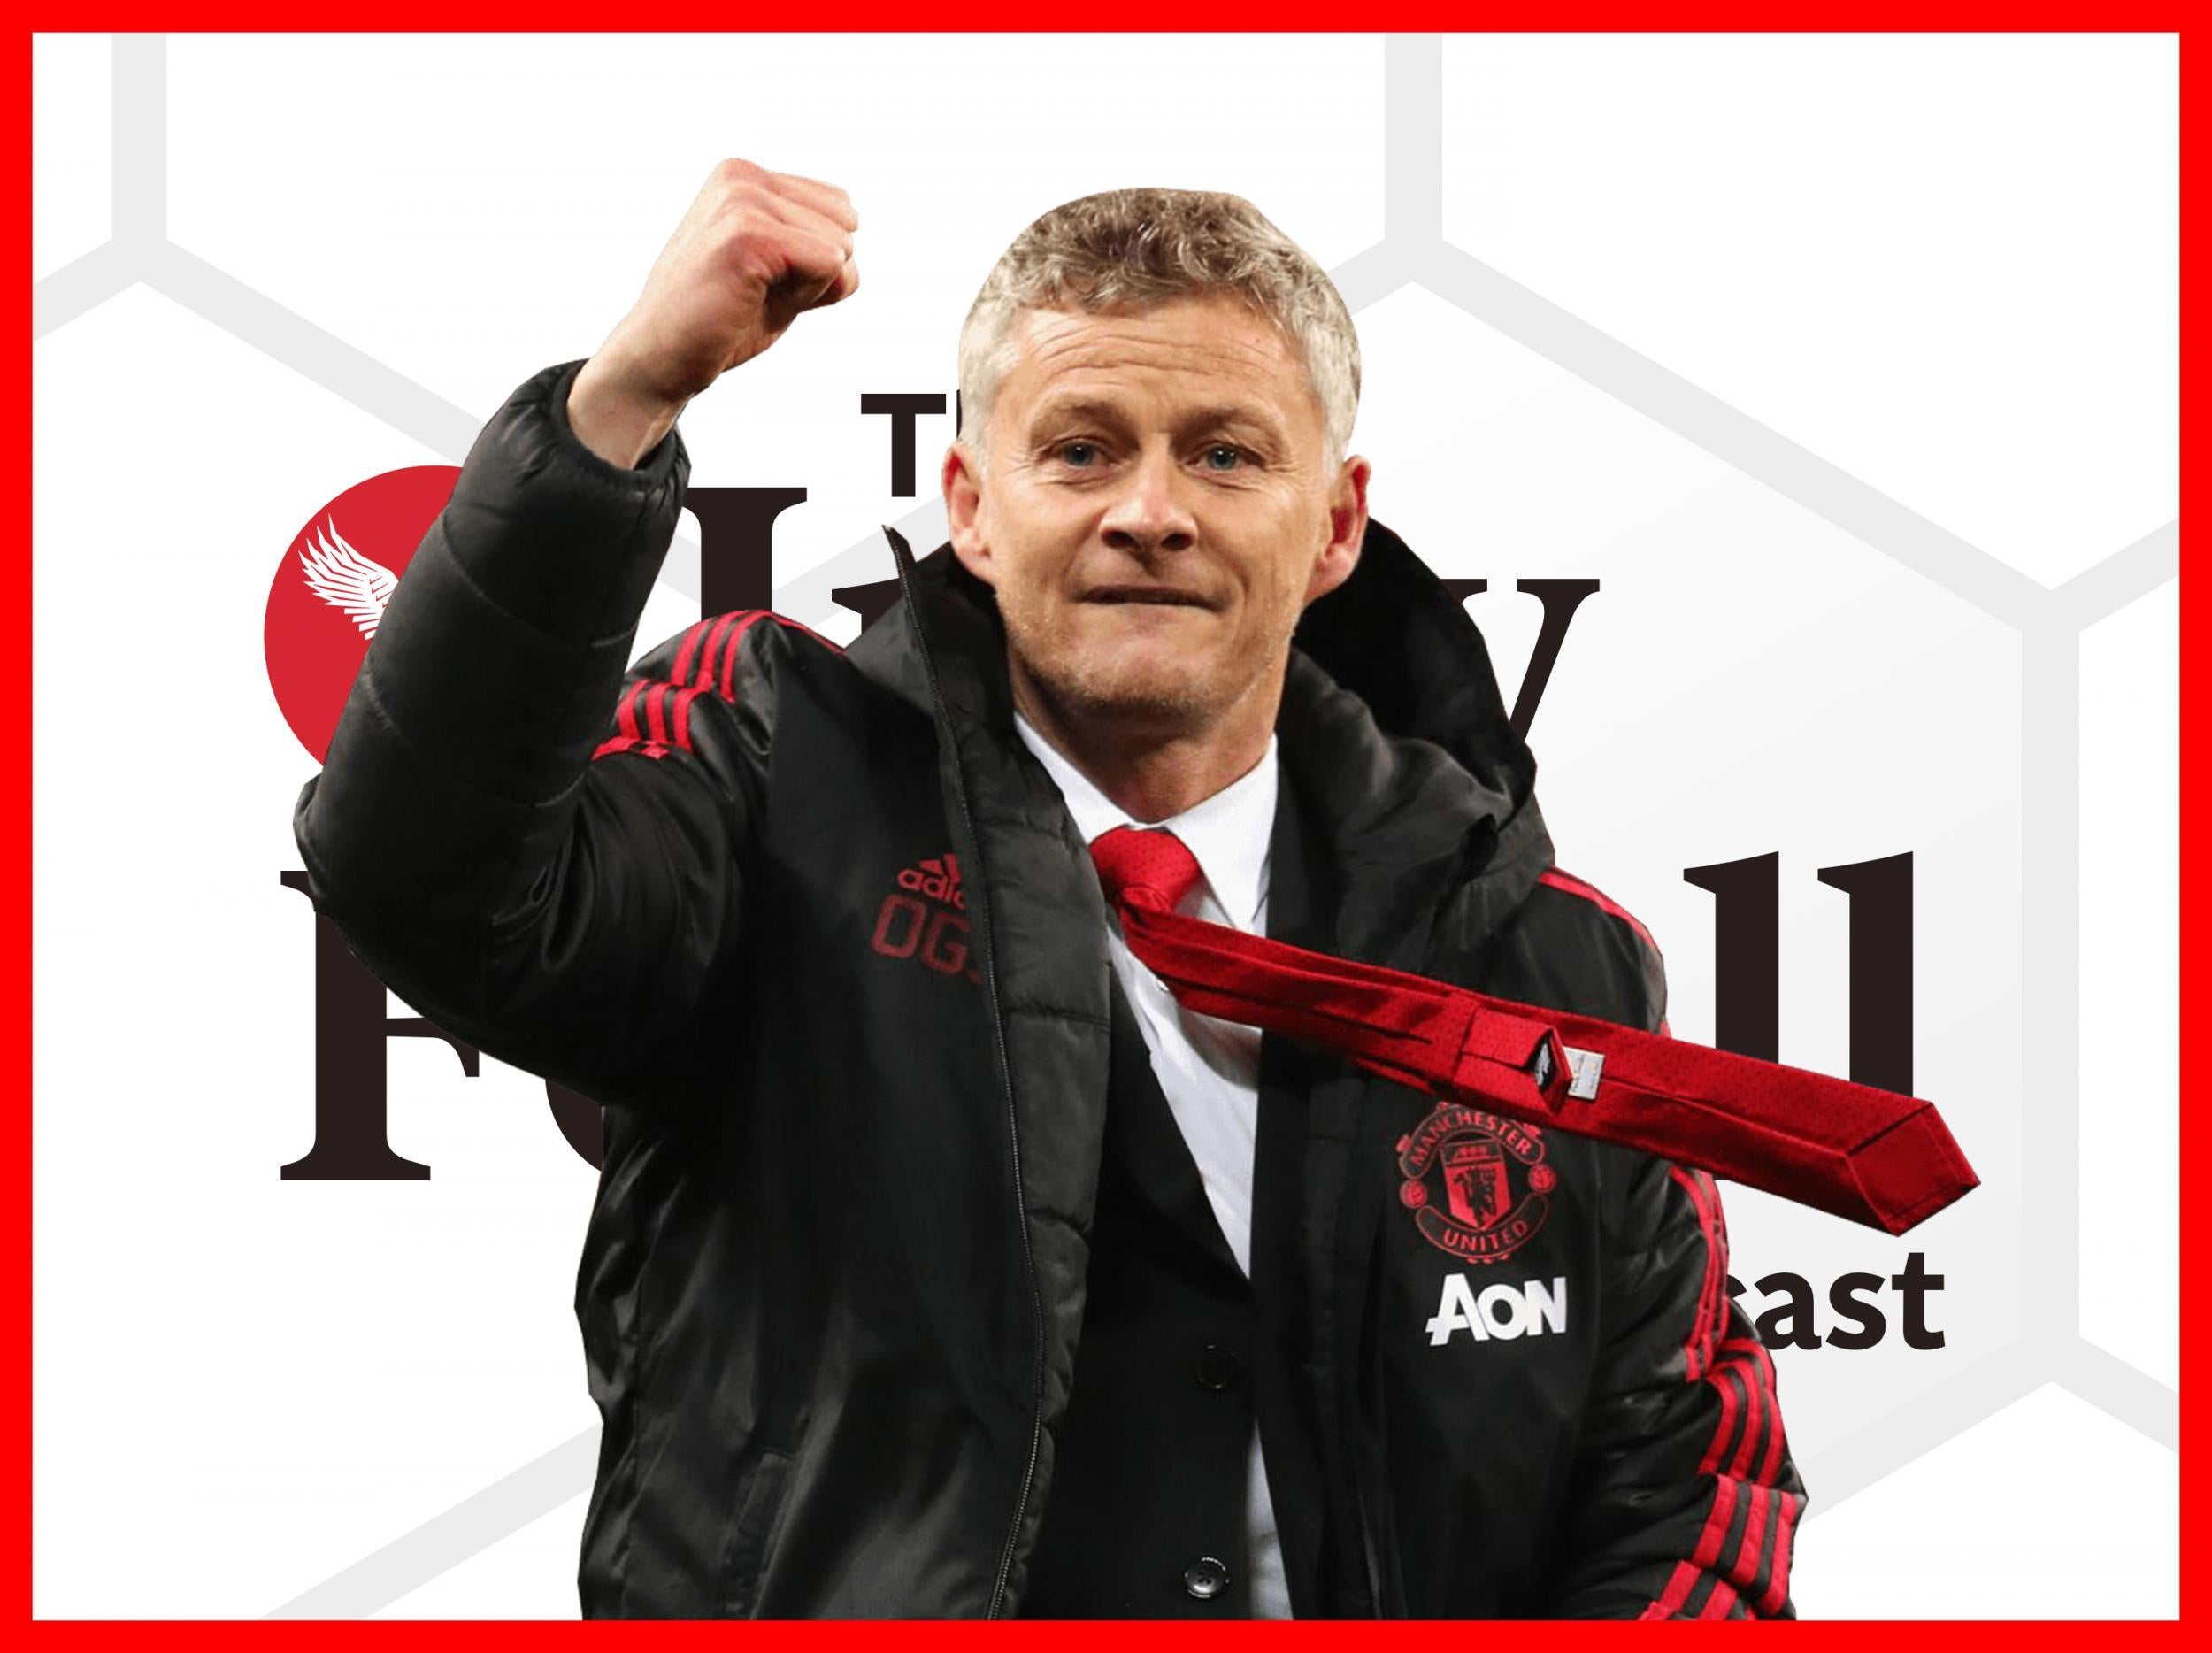 Indy Football Podcast: Manchester United, Ole Gunnar Solskjaer and what next for Ed Woodward?